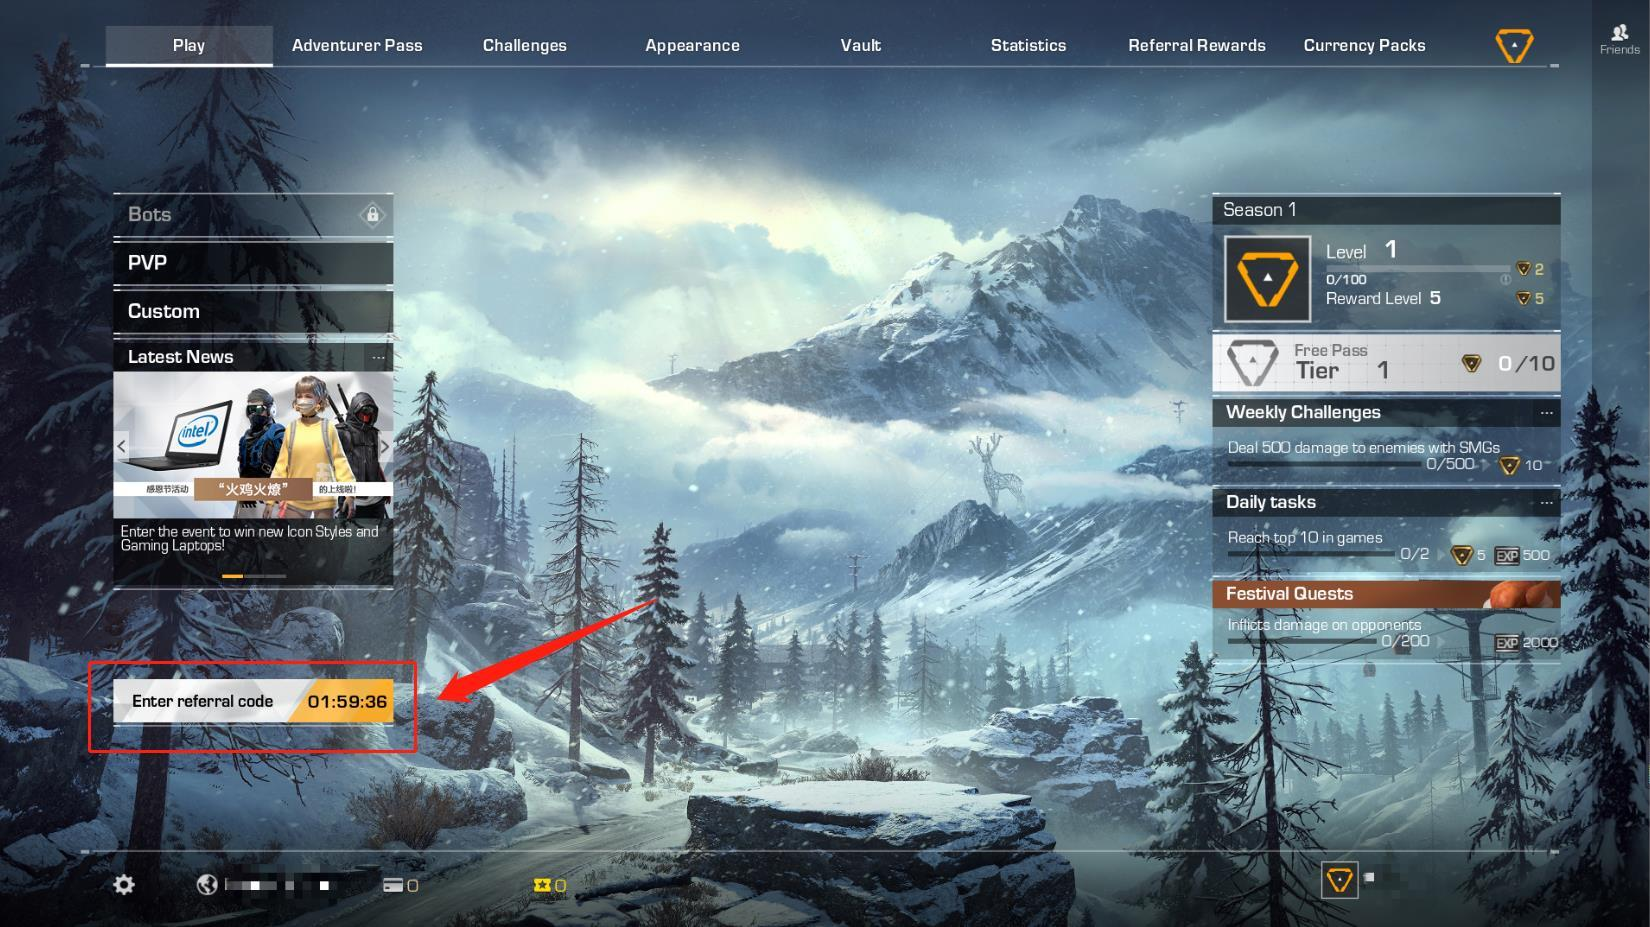 Introducing Refer-A-Friend System! :: Ring of Elysium General